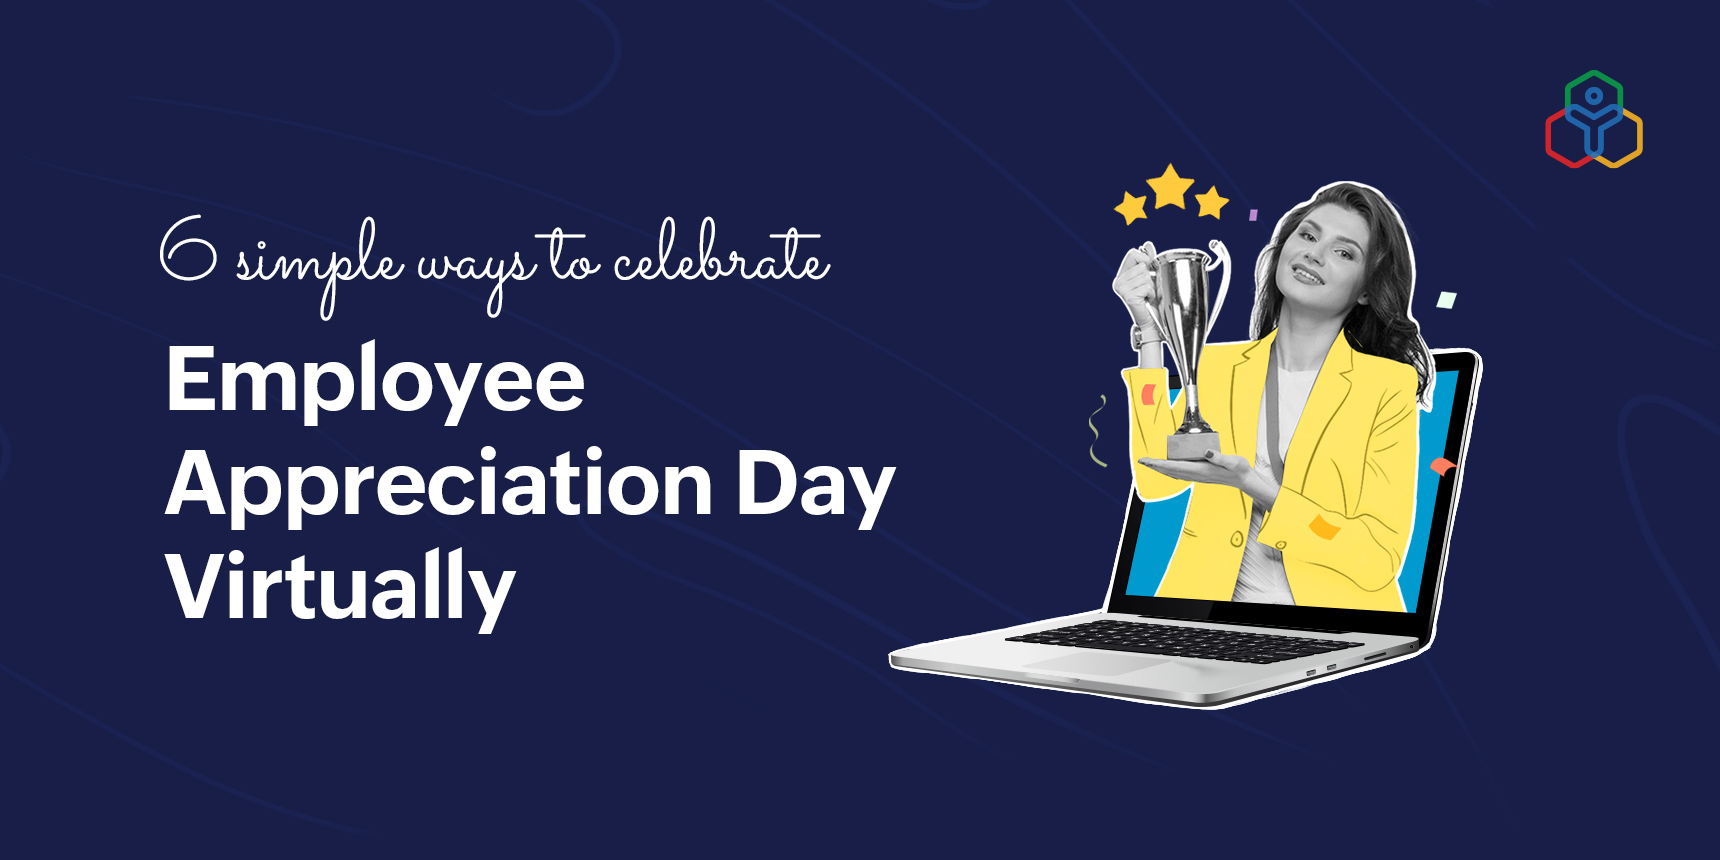 How organizations can celebrate Employee Appreciation Day virtually